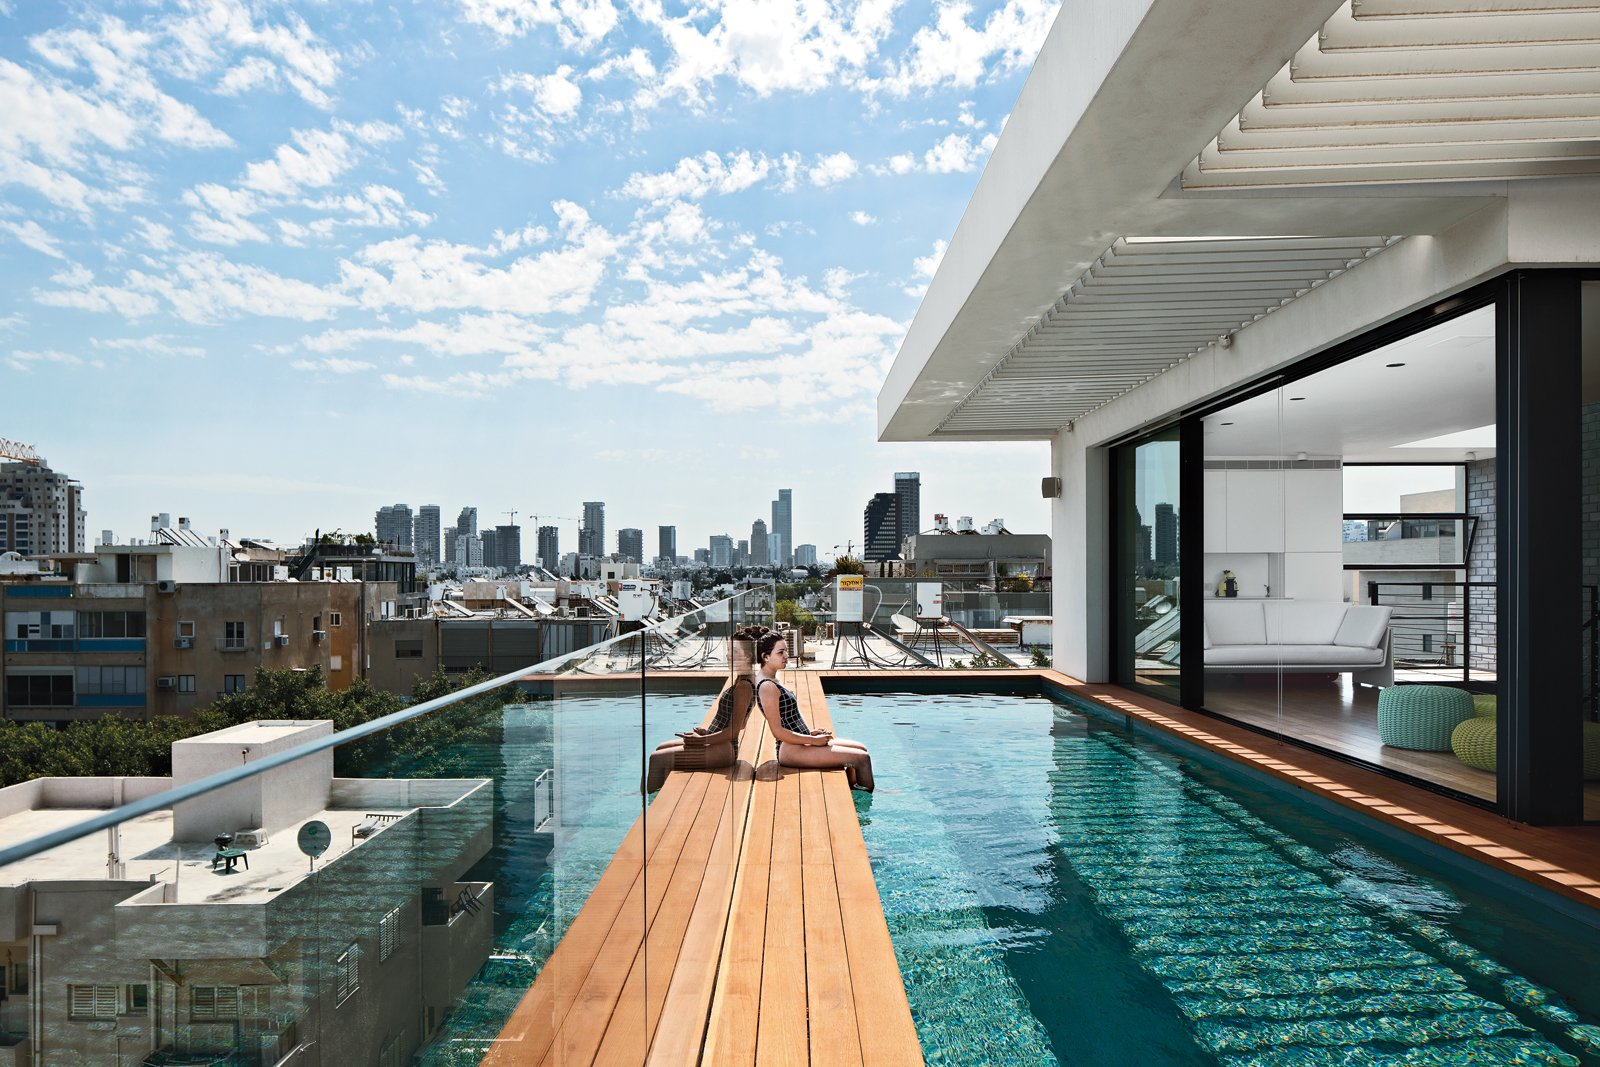 """""""Tel Aviv is different from the rest of Israel. This is one of the most modern cities in the world."""" —Architect Pitsou Kedem  Cannonball! Jump into These Modern Pools by Matthew Keeshin from Modern High-Rise Town House in Tel Aviv"""